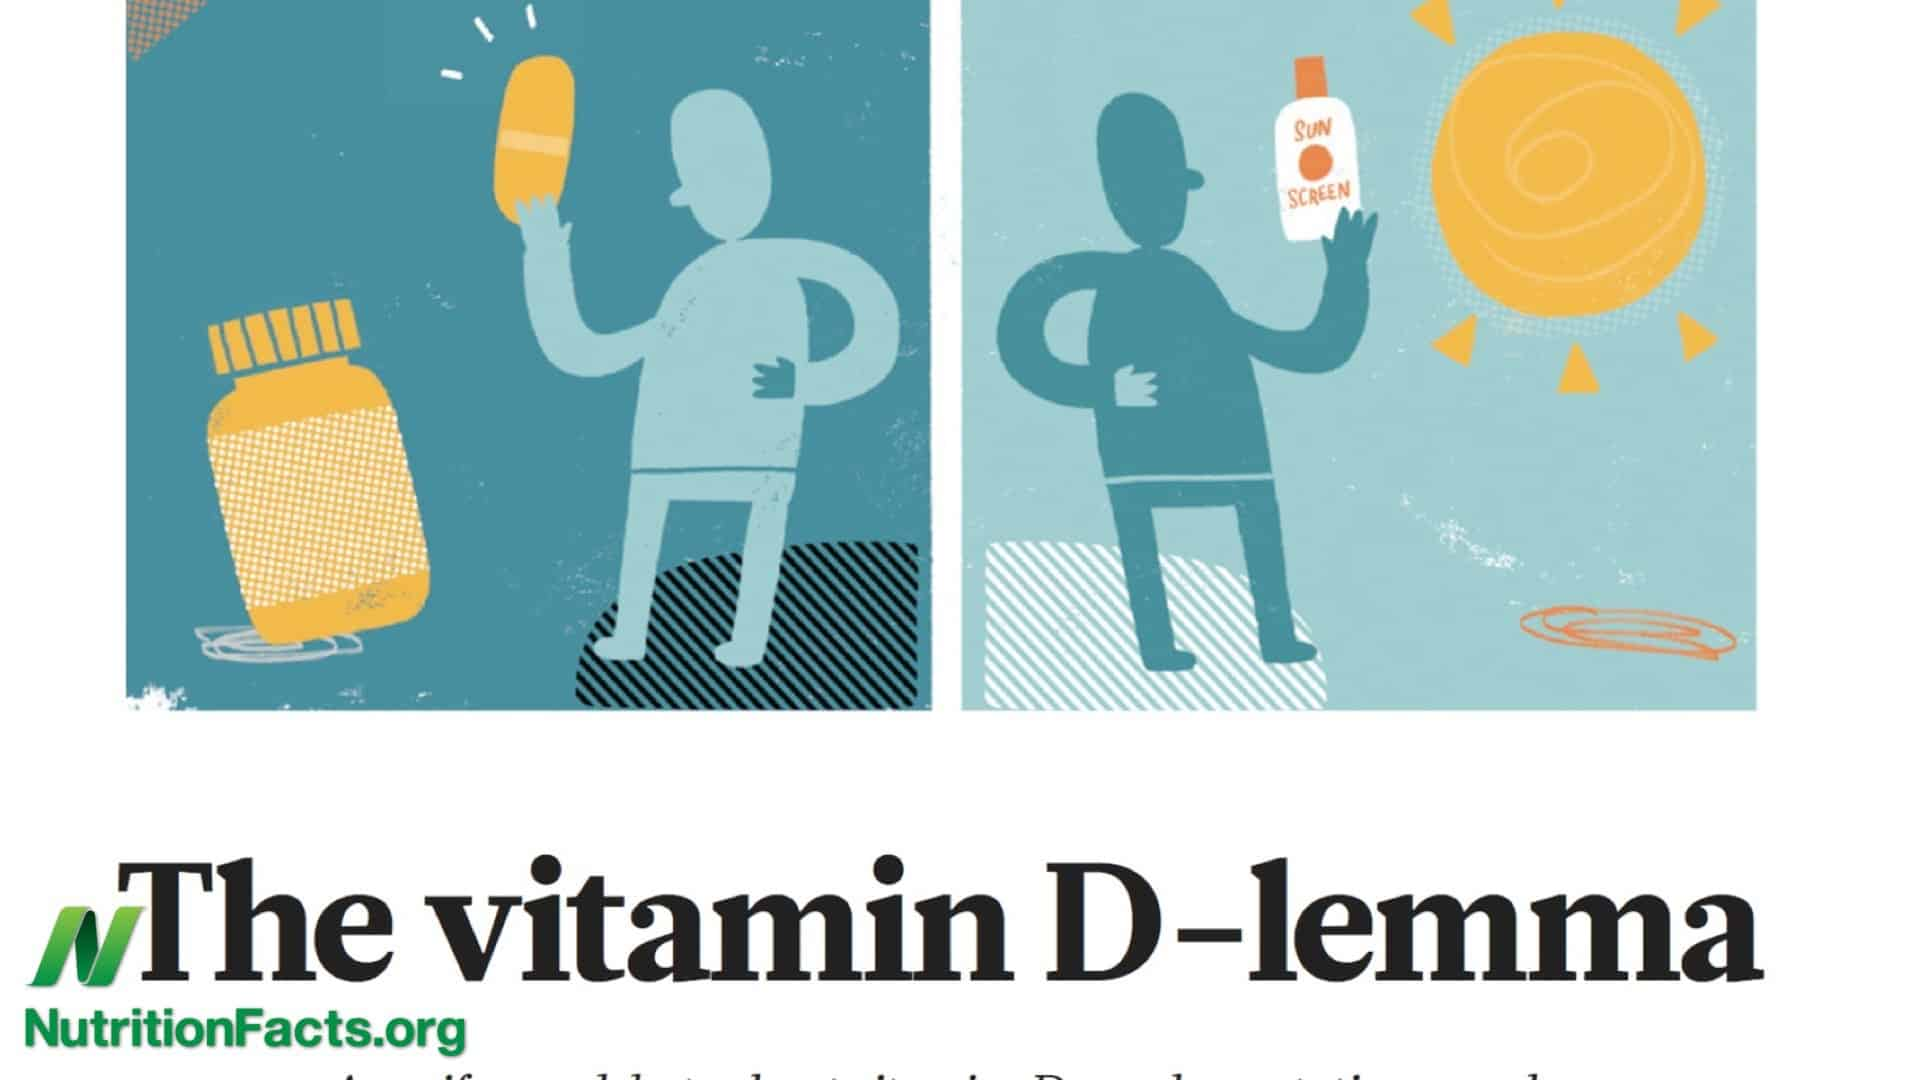 Is vitamin D the new vitamin E?